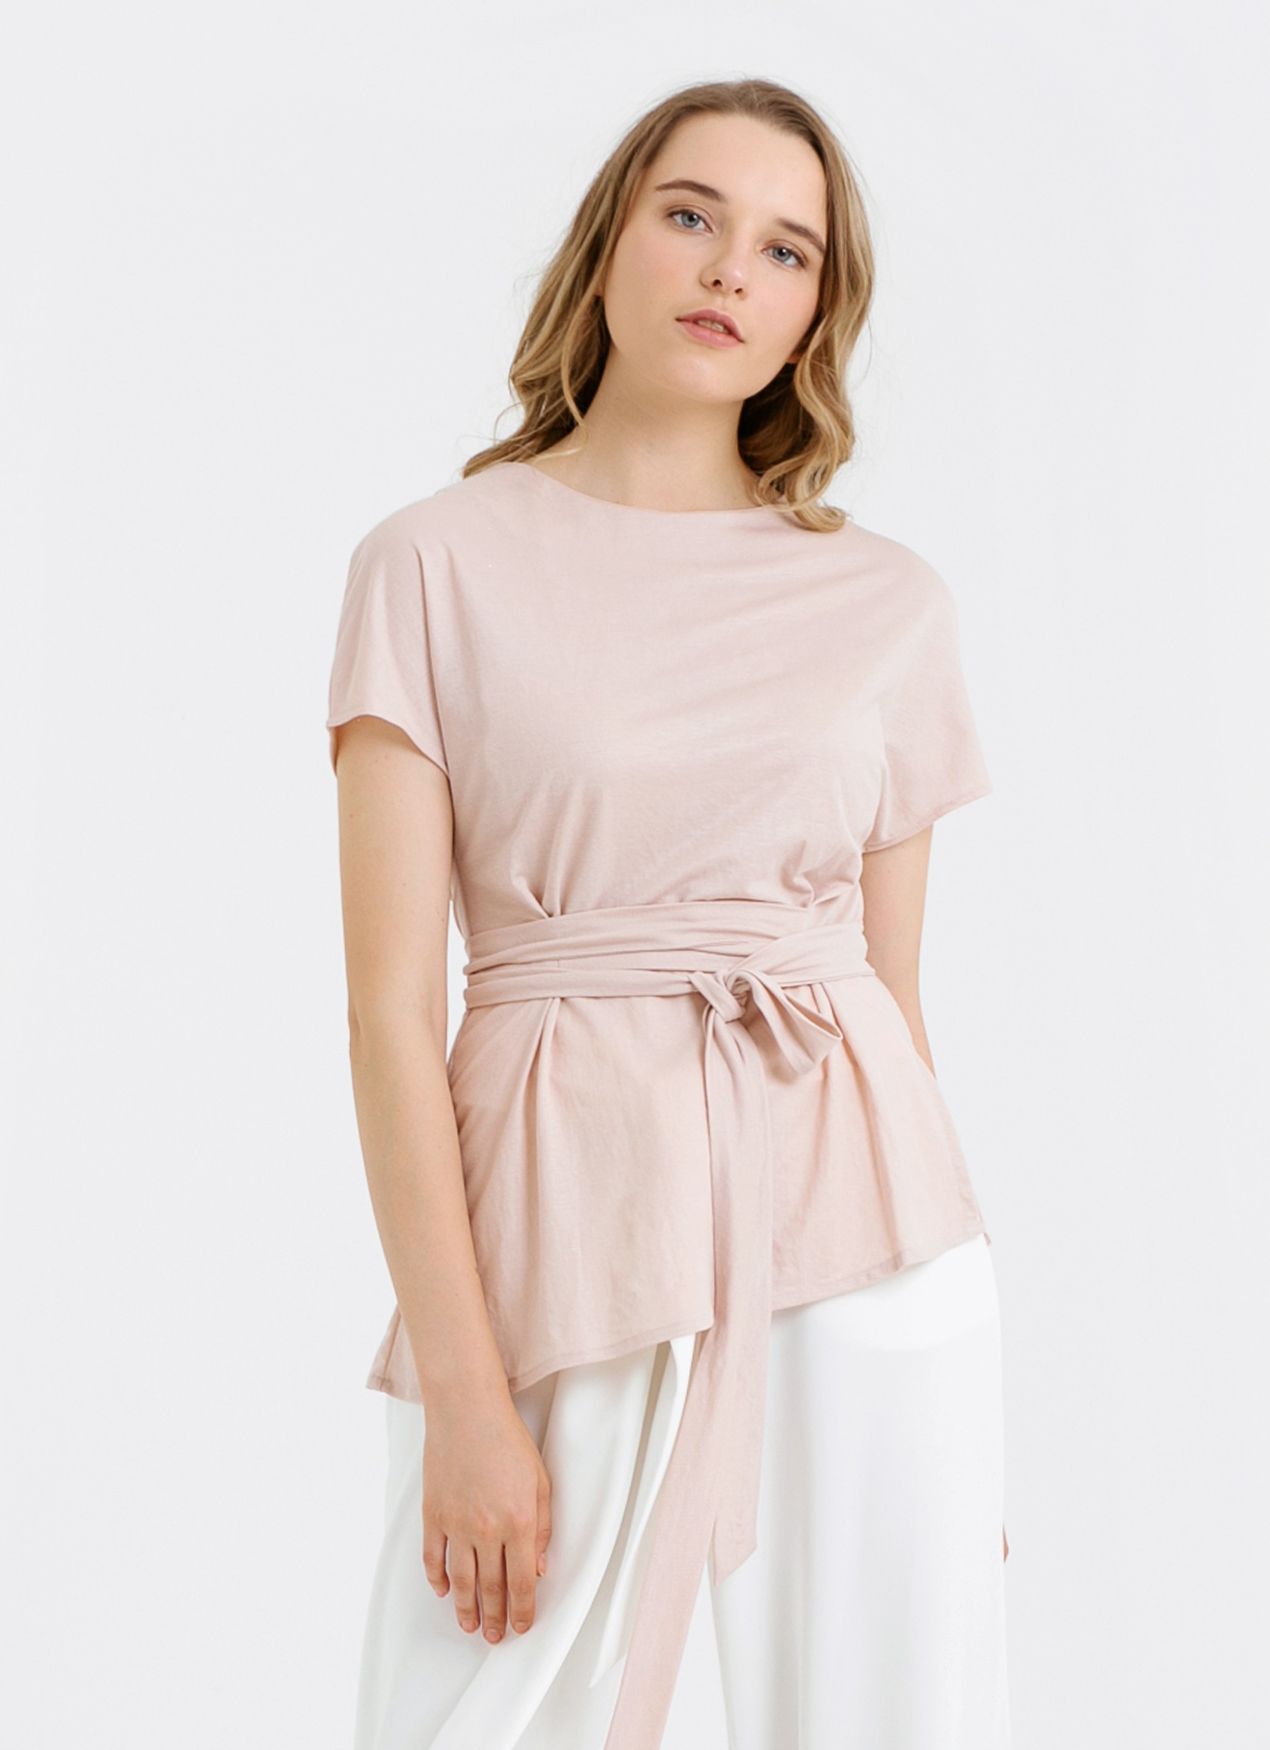 CLOTH INC Asymmetric Hem Tied Top - Rose